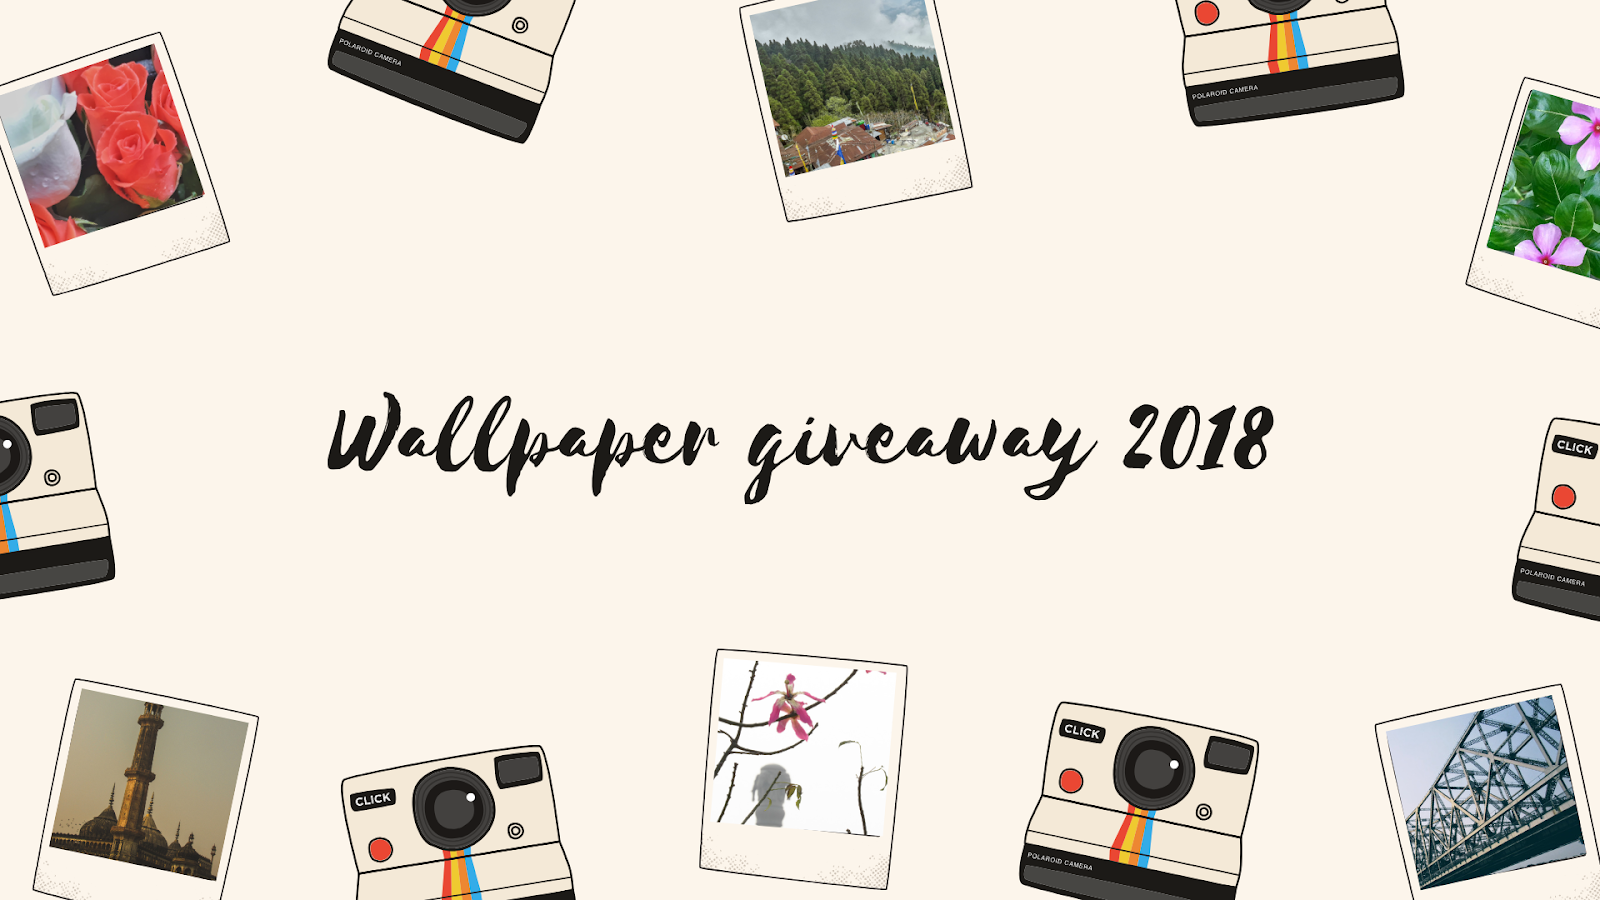 wallpaper giveaway 2018 mayukh datta